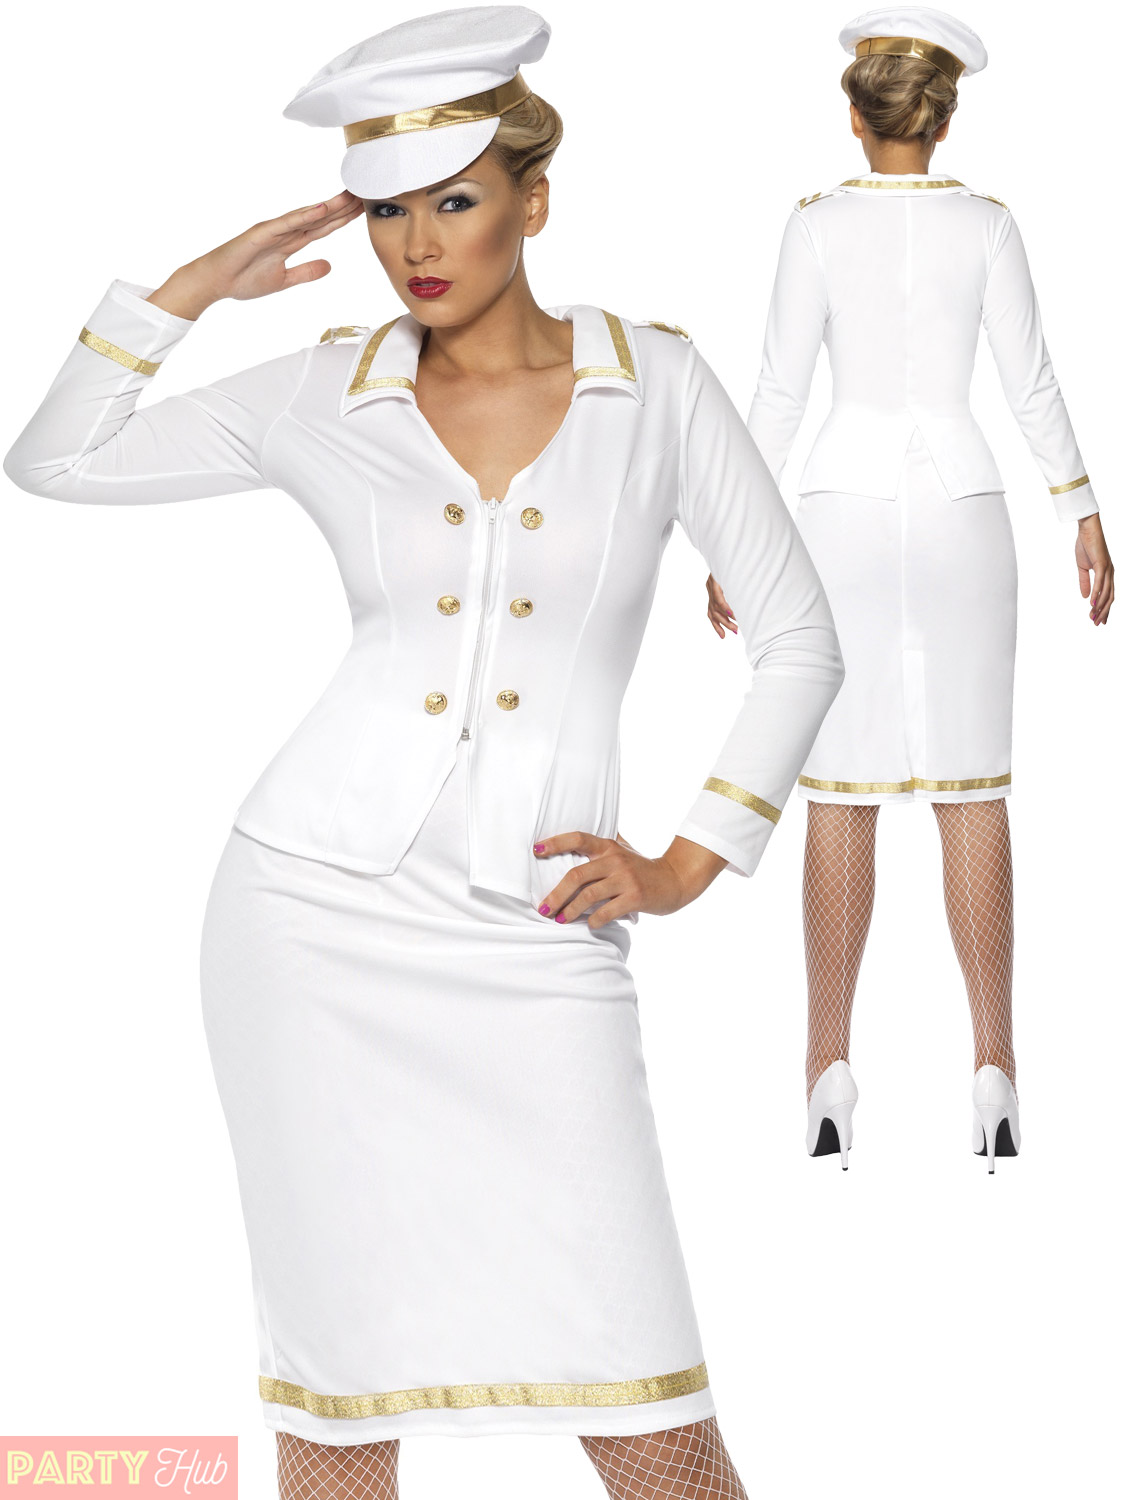 Ladies Officers Mate Costume Adult Sailor Navy Captain Fancy Dress Womens Outfit